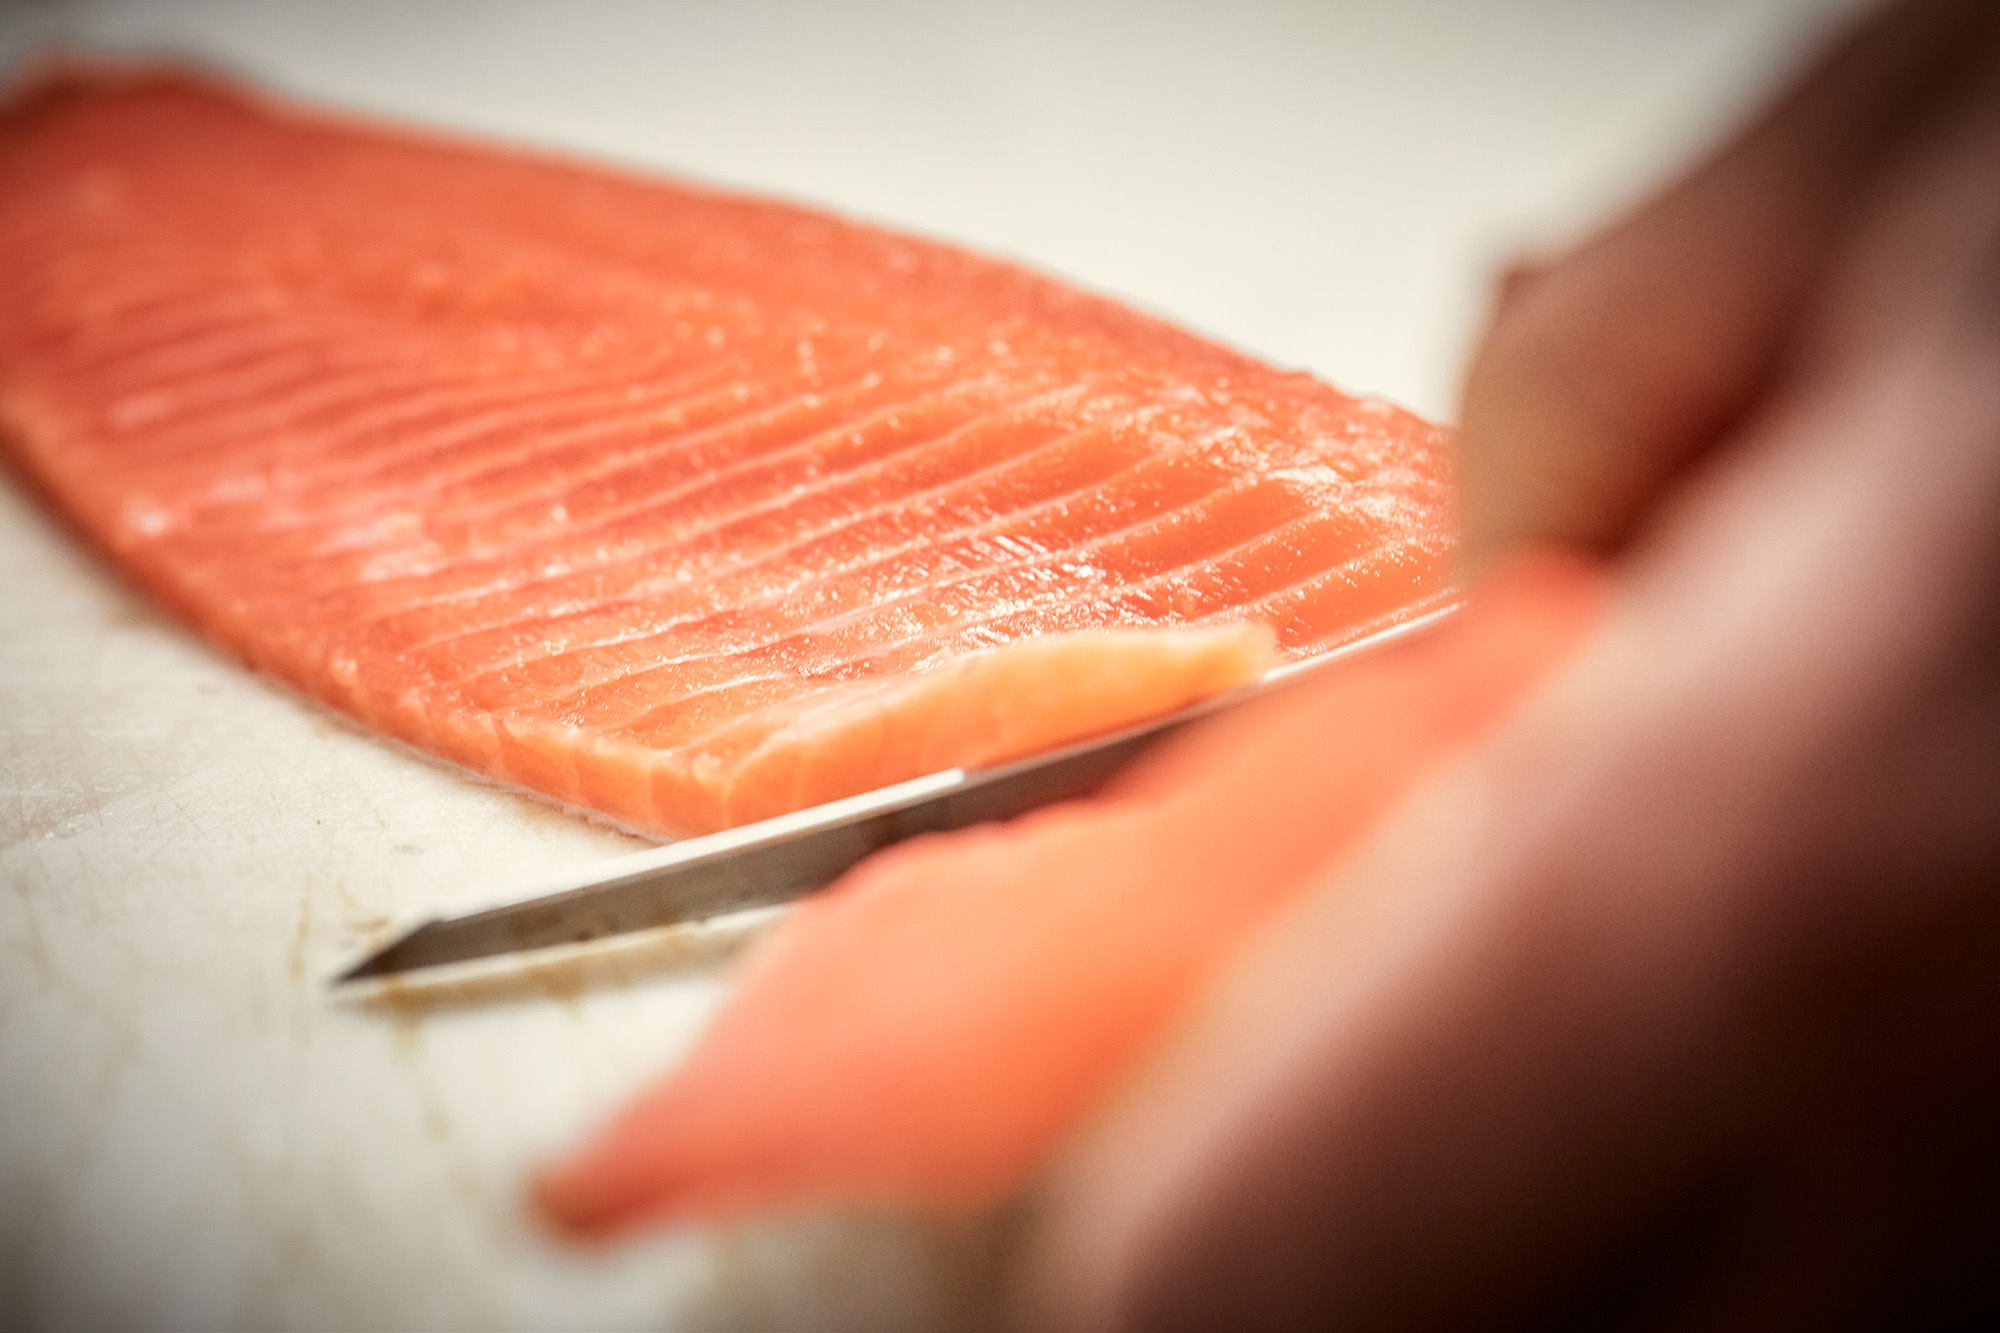 filleting the trout